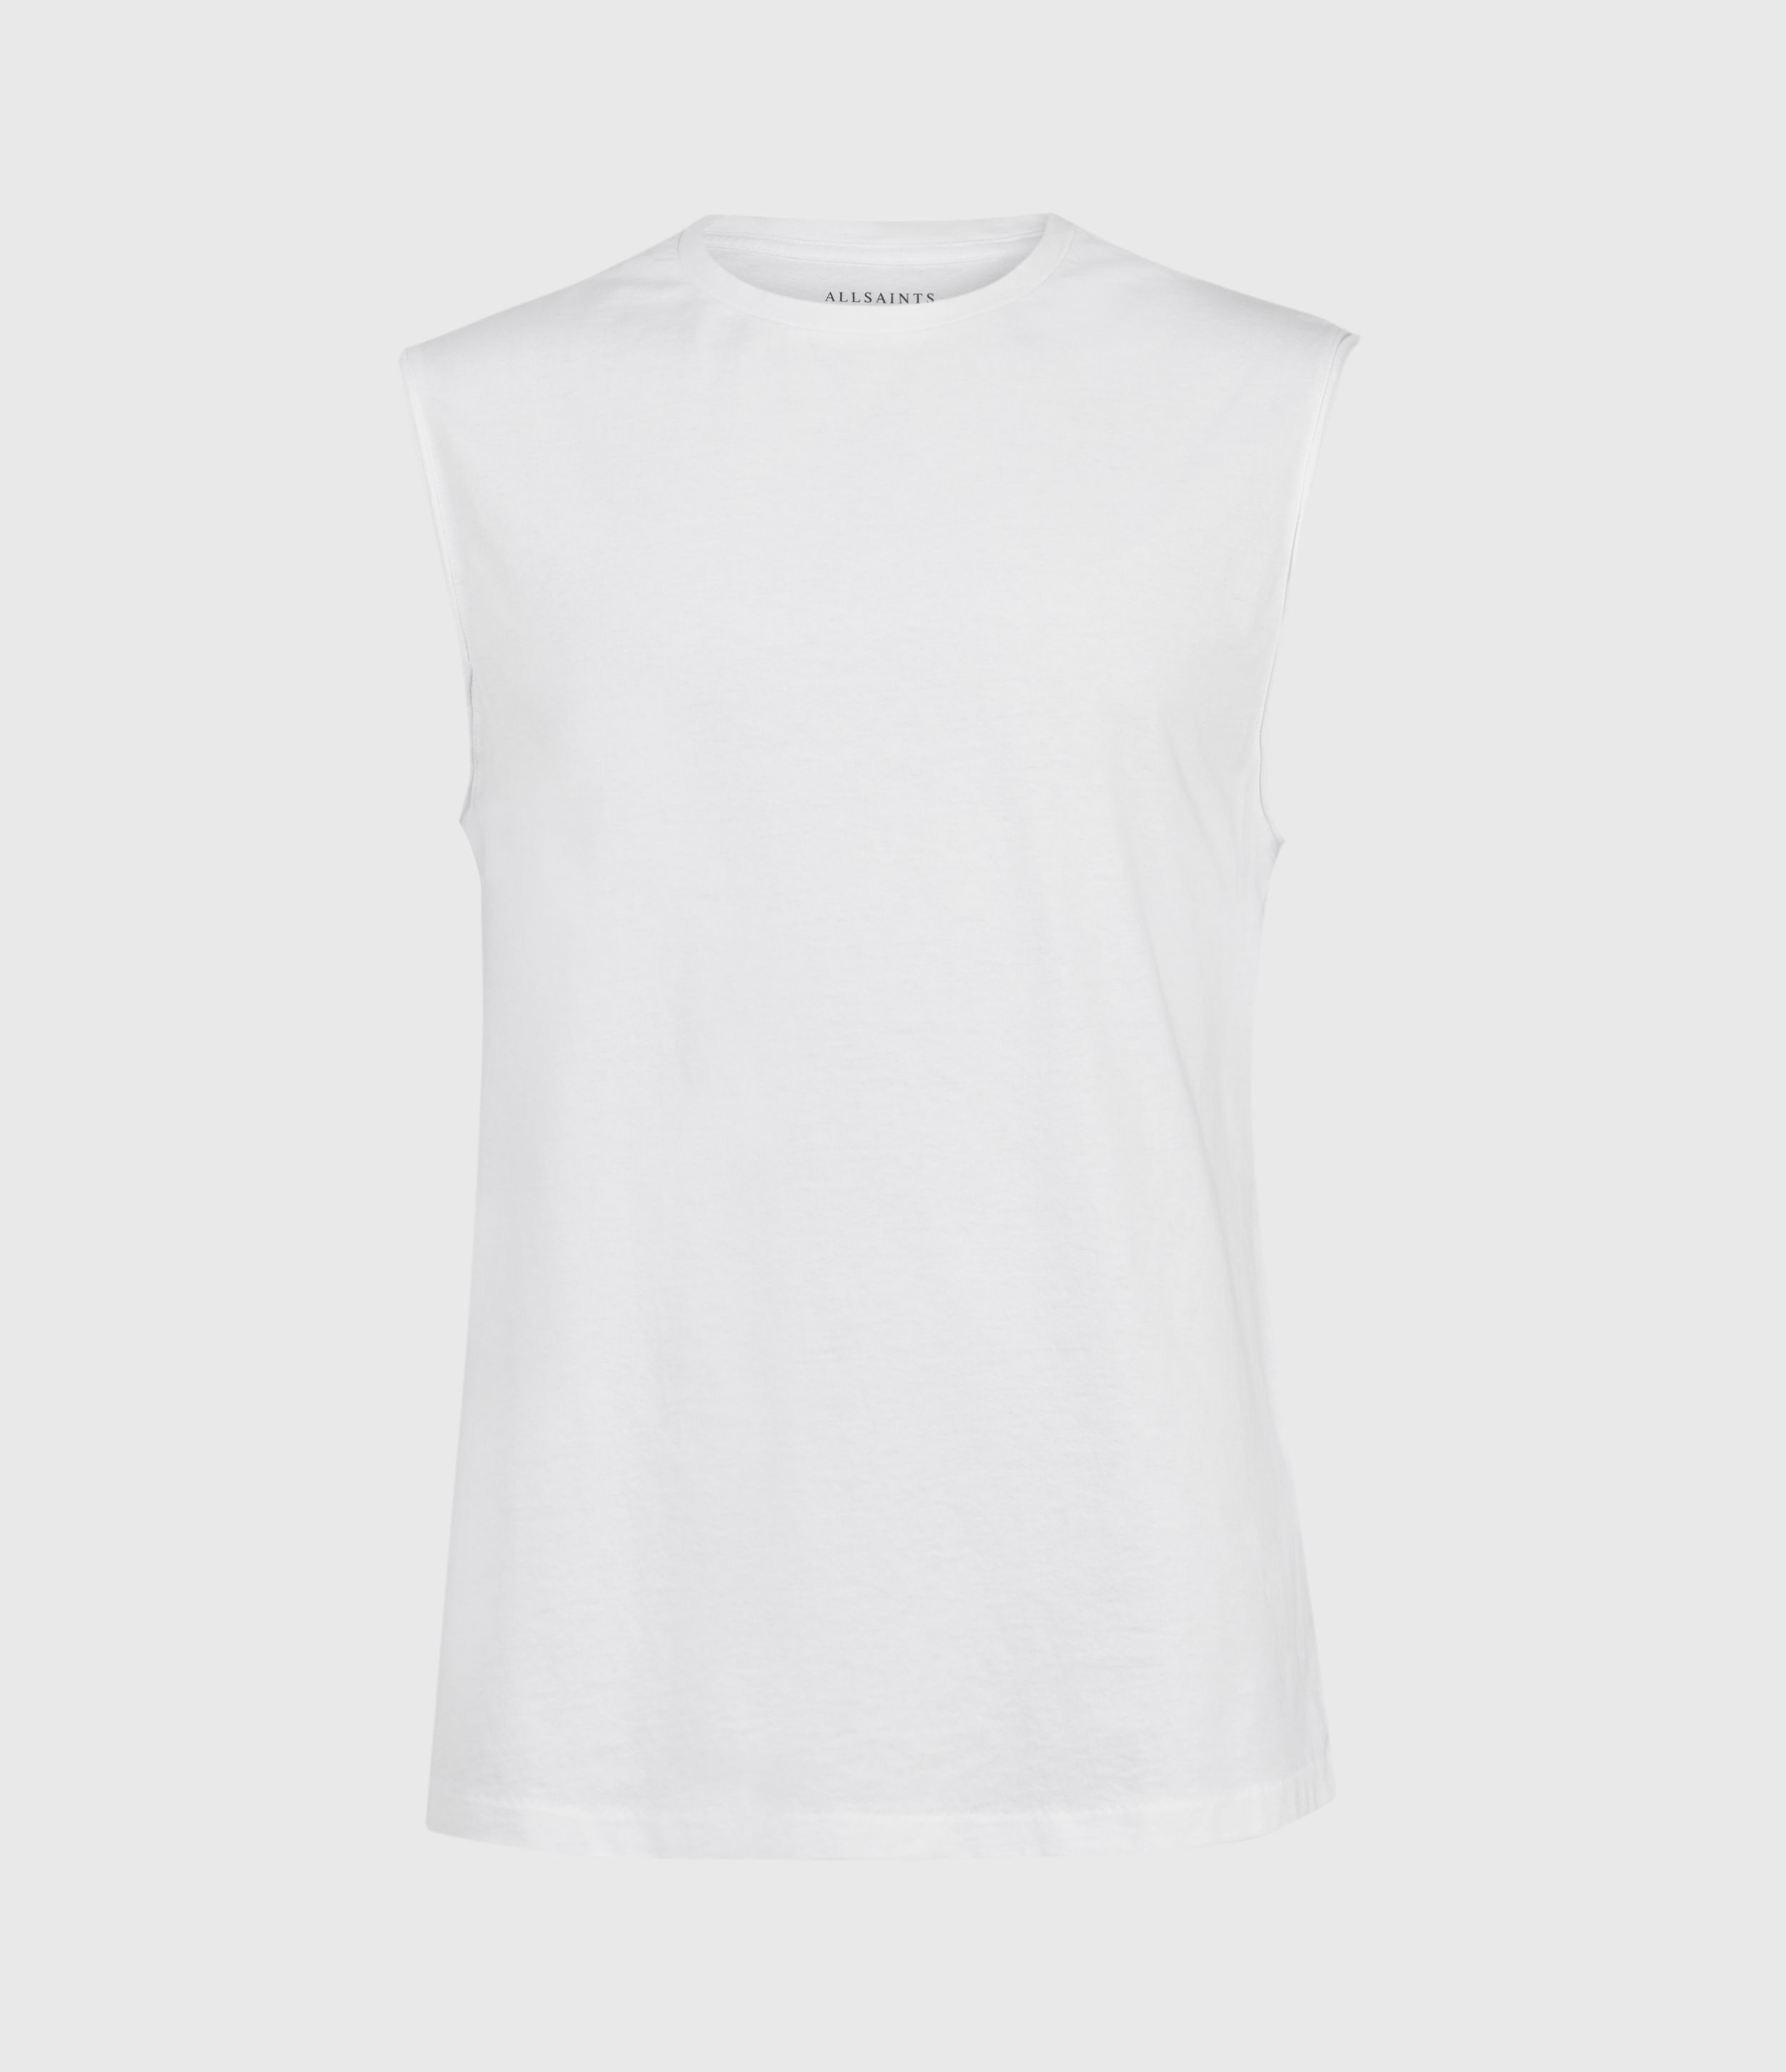 AllSaints Men's Cotton Regular Fit Vision Sleeveless Crew T-Shirt, White, Size: XXL